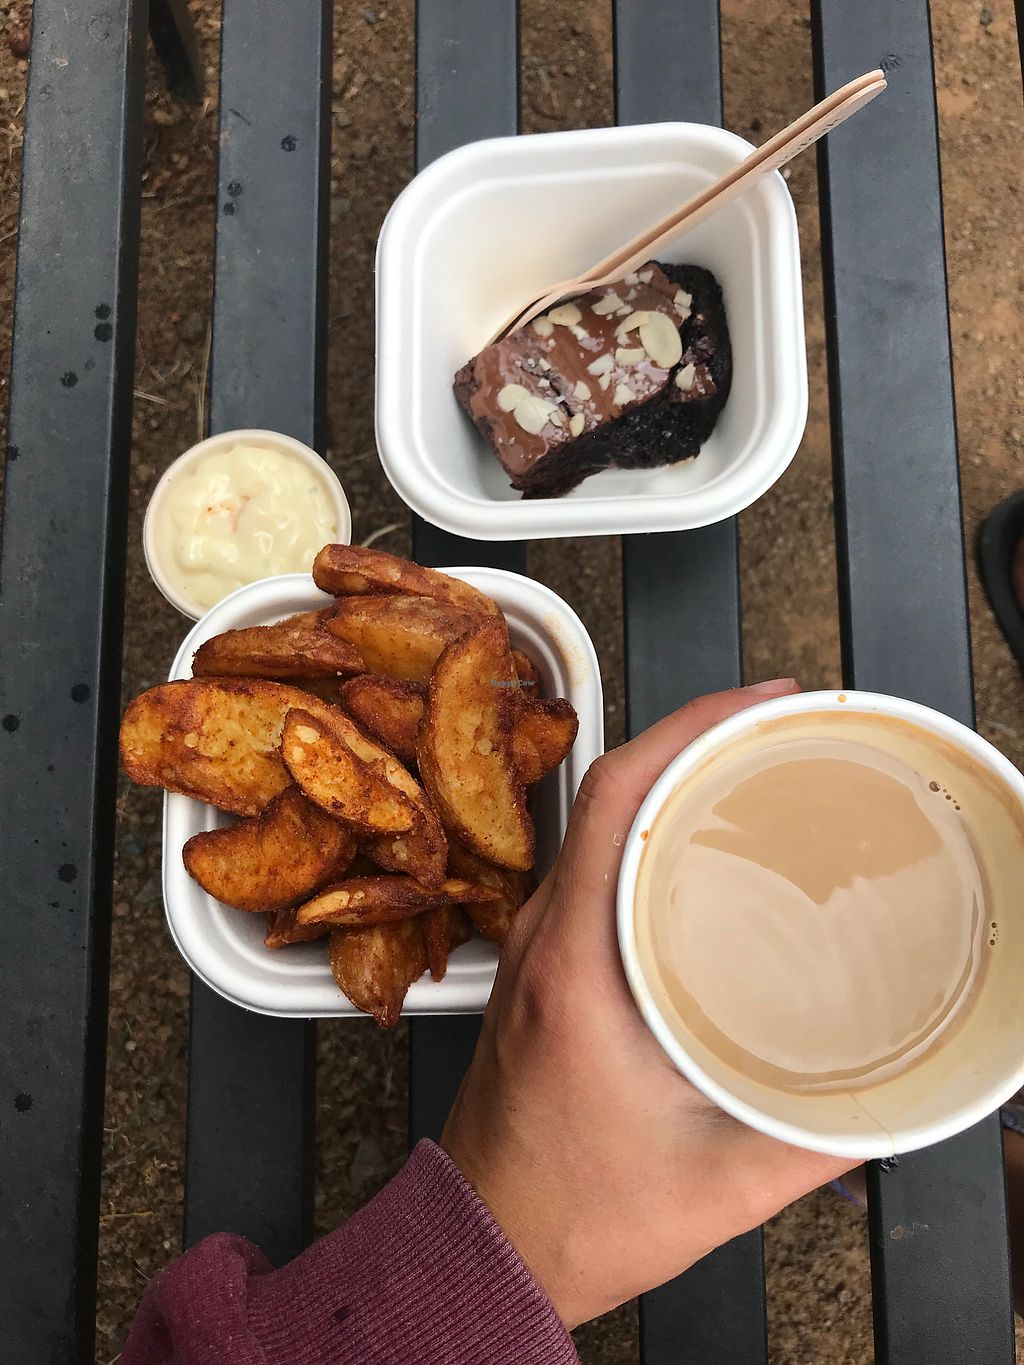 "Photo of Bonorong Wildlife Sanctuary Kiosk and Shop  by <a href=""/members/profile/allyandlouis"">allyandlouis</a> <br/>Wedges, aioli, warmed up brownie, soy coffee <br/> December 20, 2017  - <a href='/contact/abuse/image/92849/337439'>Report</a>"